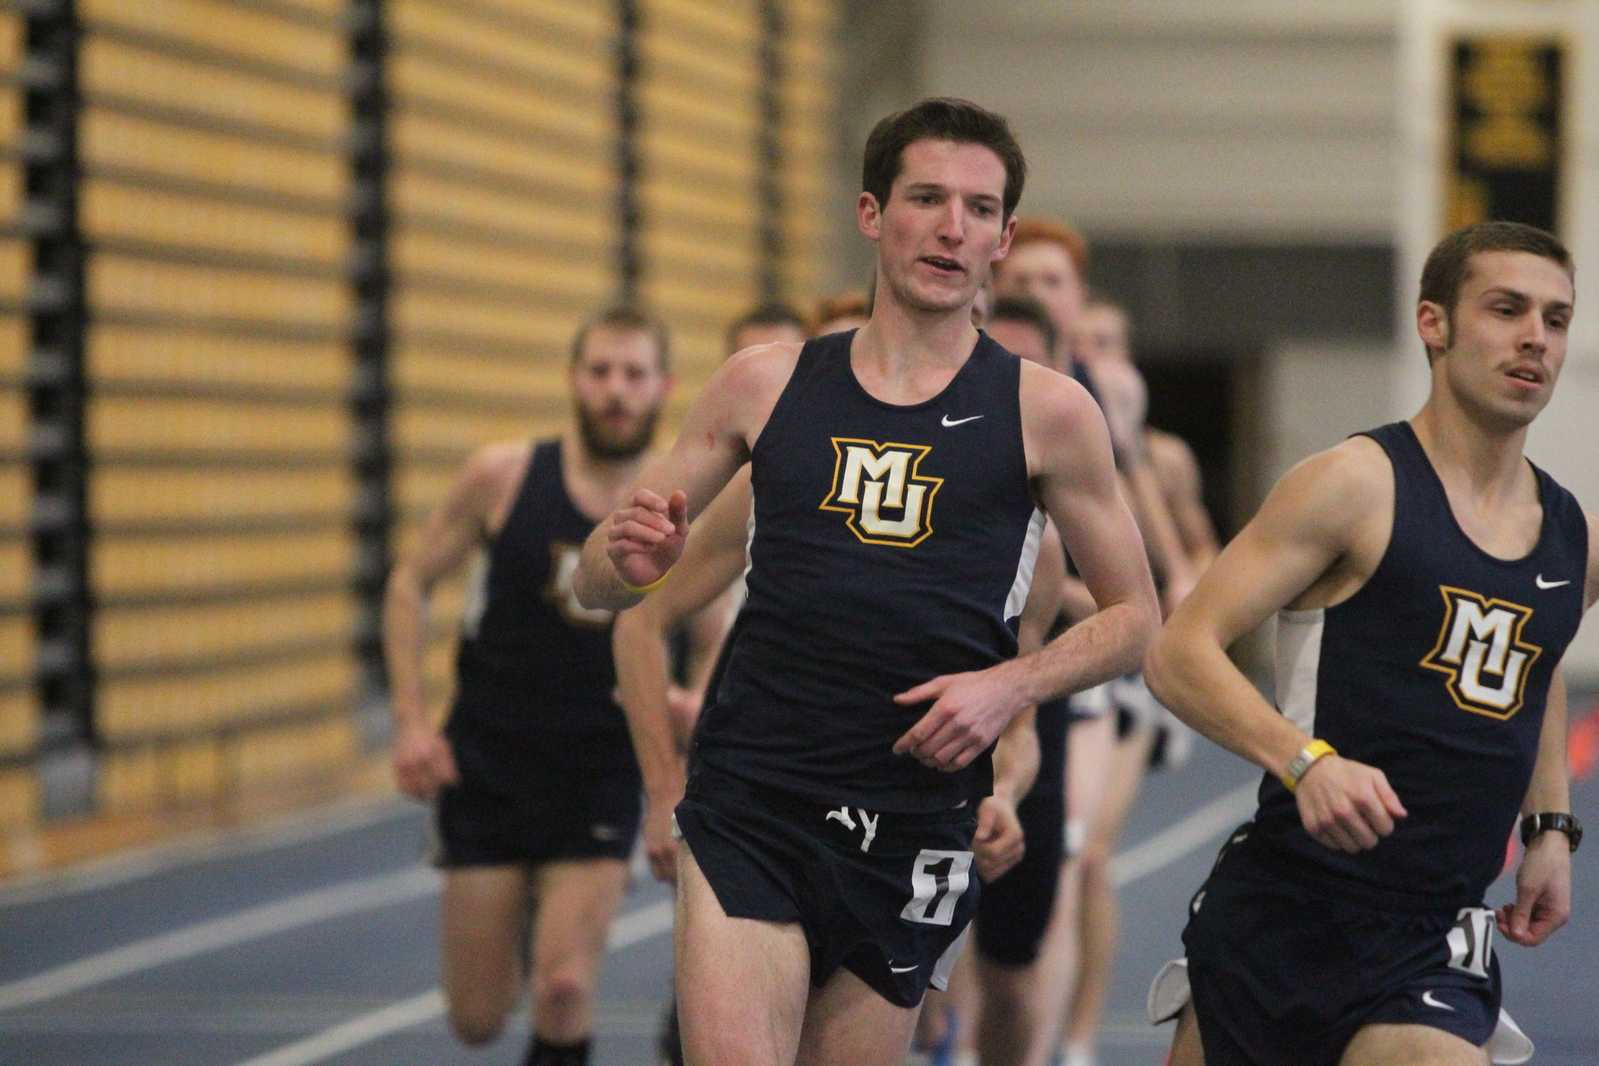 Jack Hackett, Marquette's top runner, graduated last year.